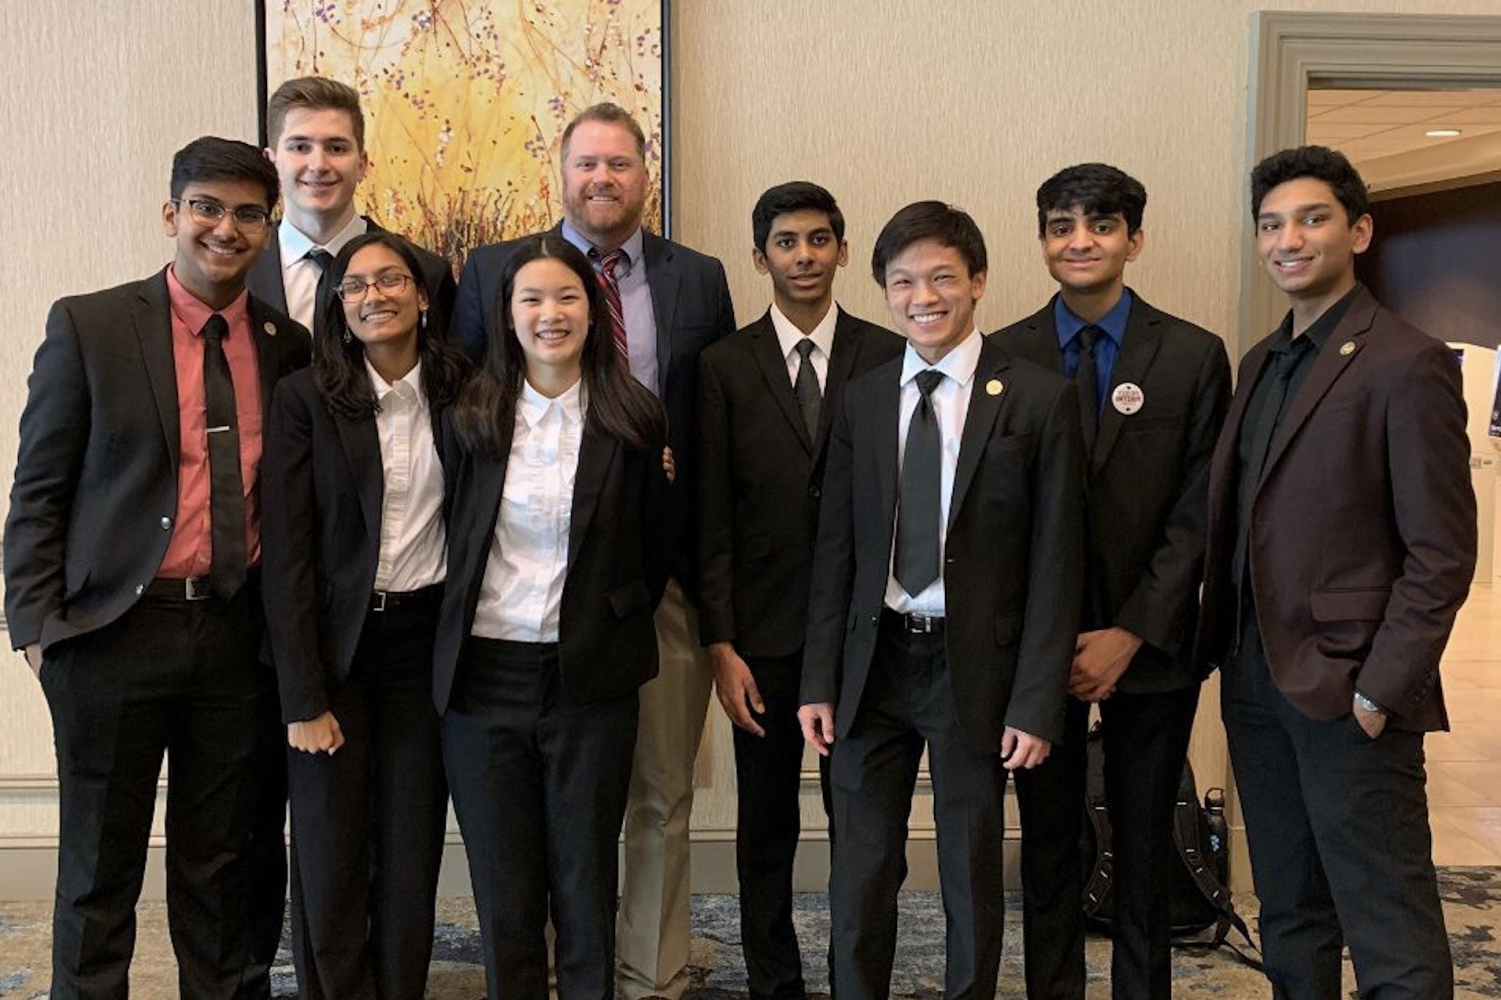 Nine Redhawks competing in the state BPA conference pose after contests concluded in Dallas the Saturday after school let out for spring break. Students Kapil Rampalli, Shunmathi Rajesh, and Nikhil Yerva will head to Anaheim in May having advanced to the national competition.